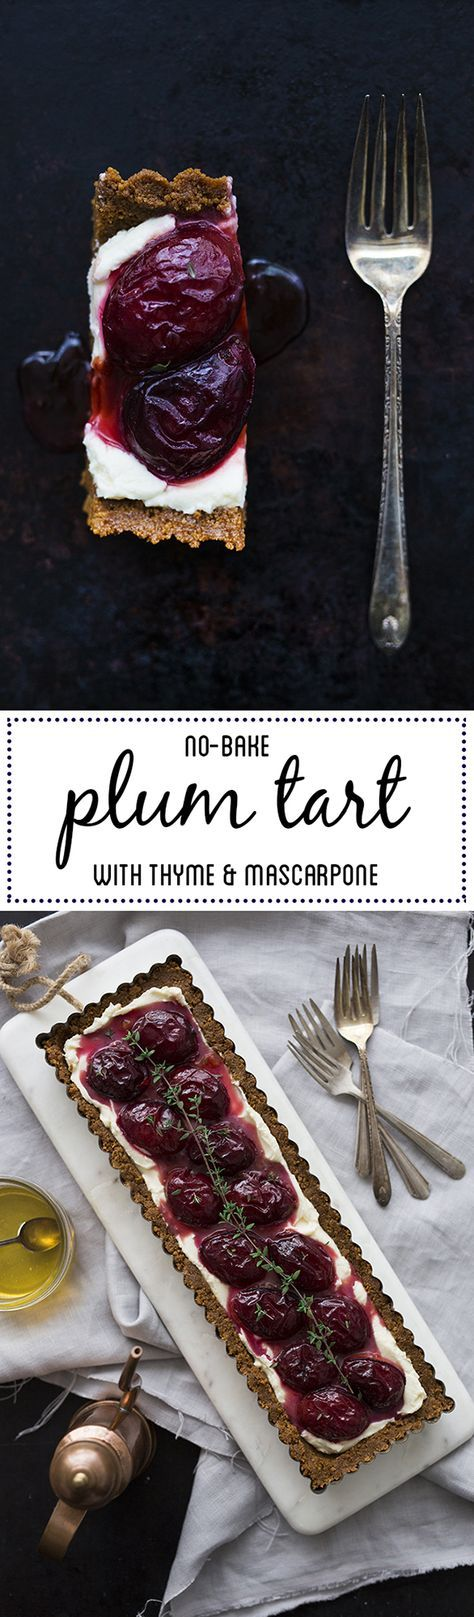 No-bake plum tart with mascarpone, thyme, and gingersnap crust | One Tough Cookie